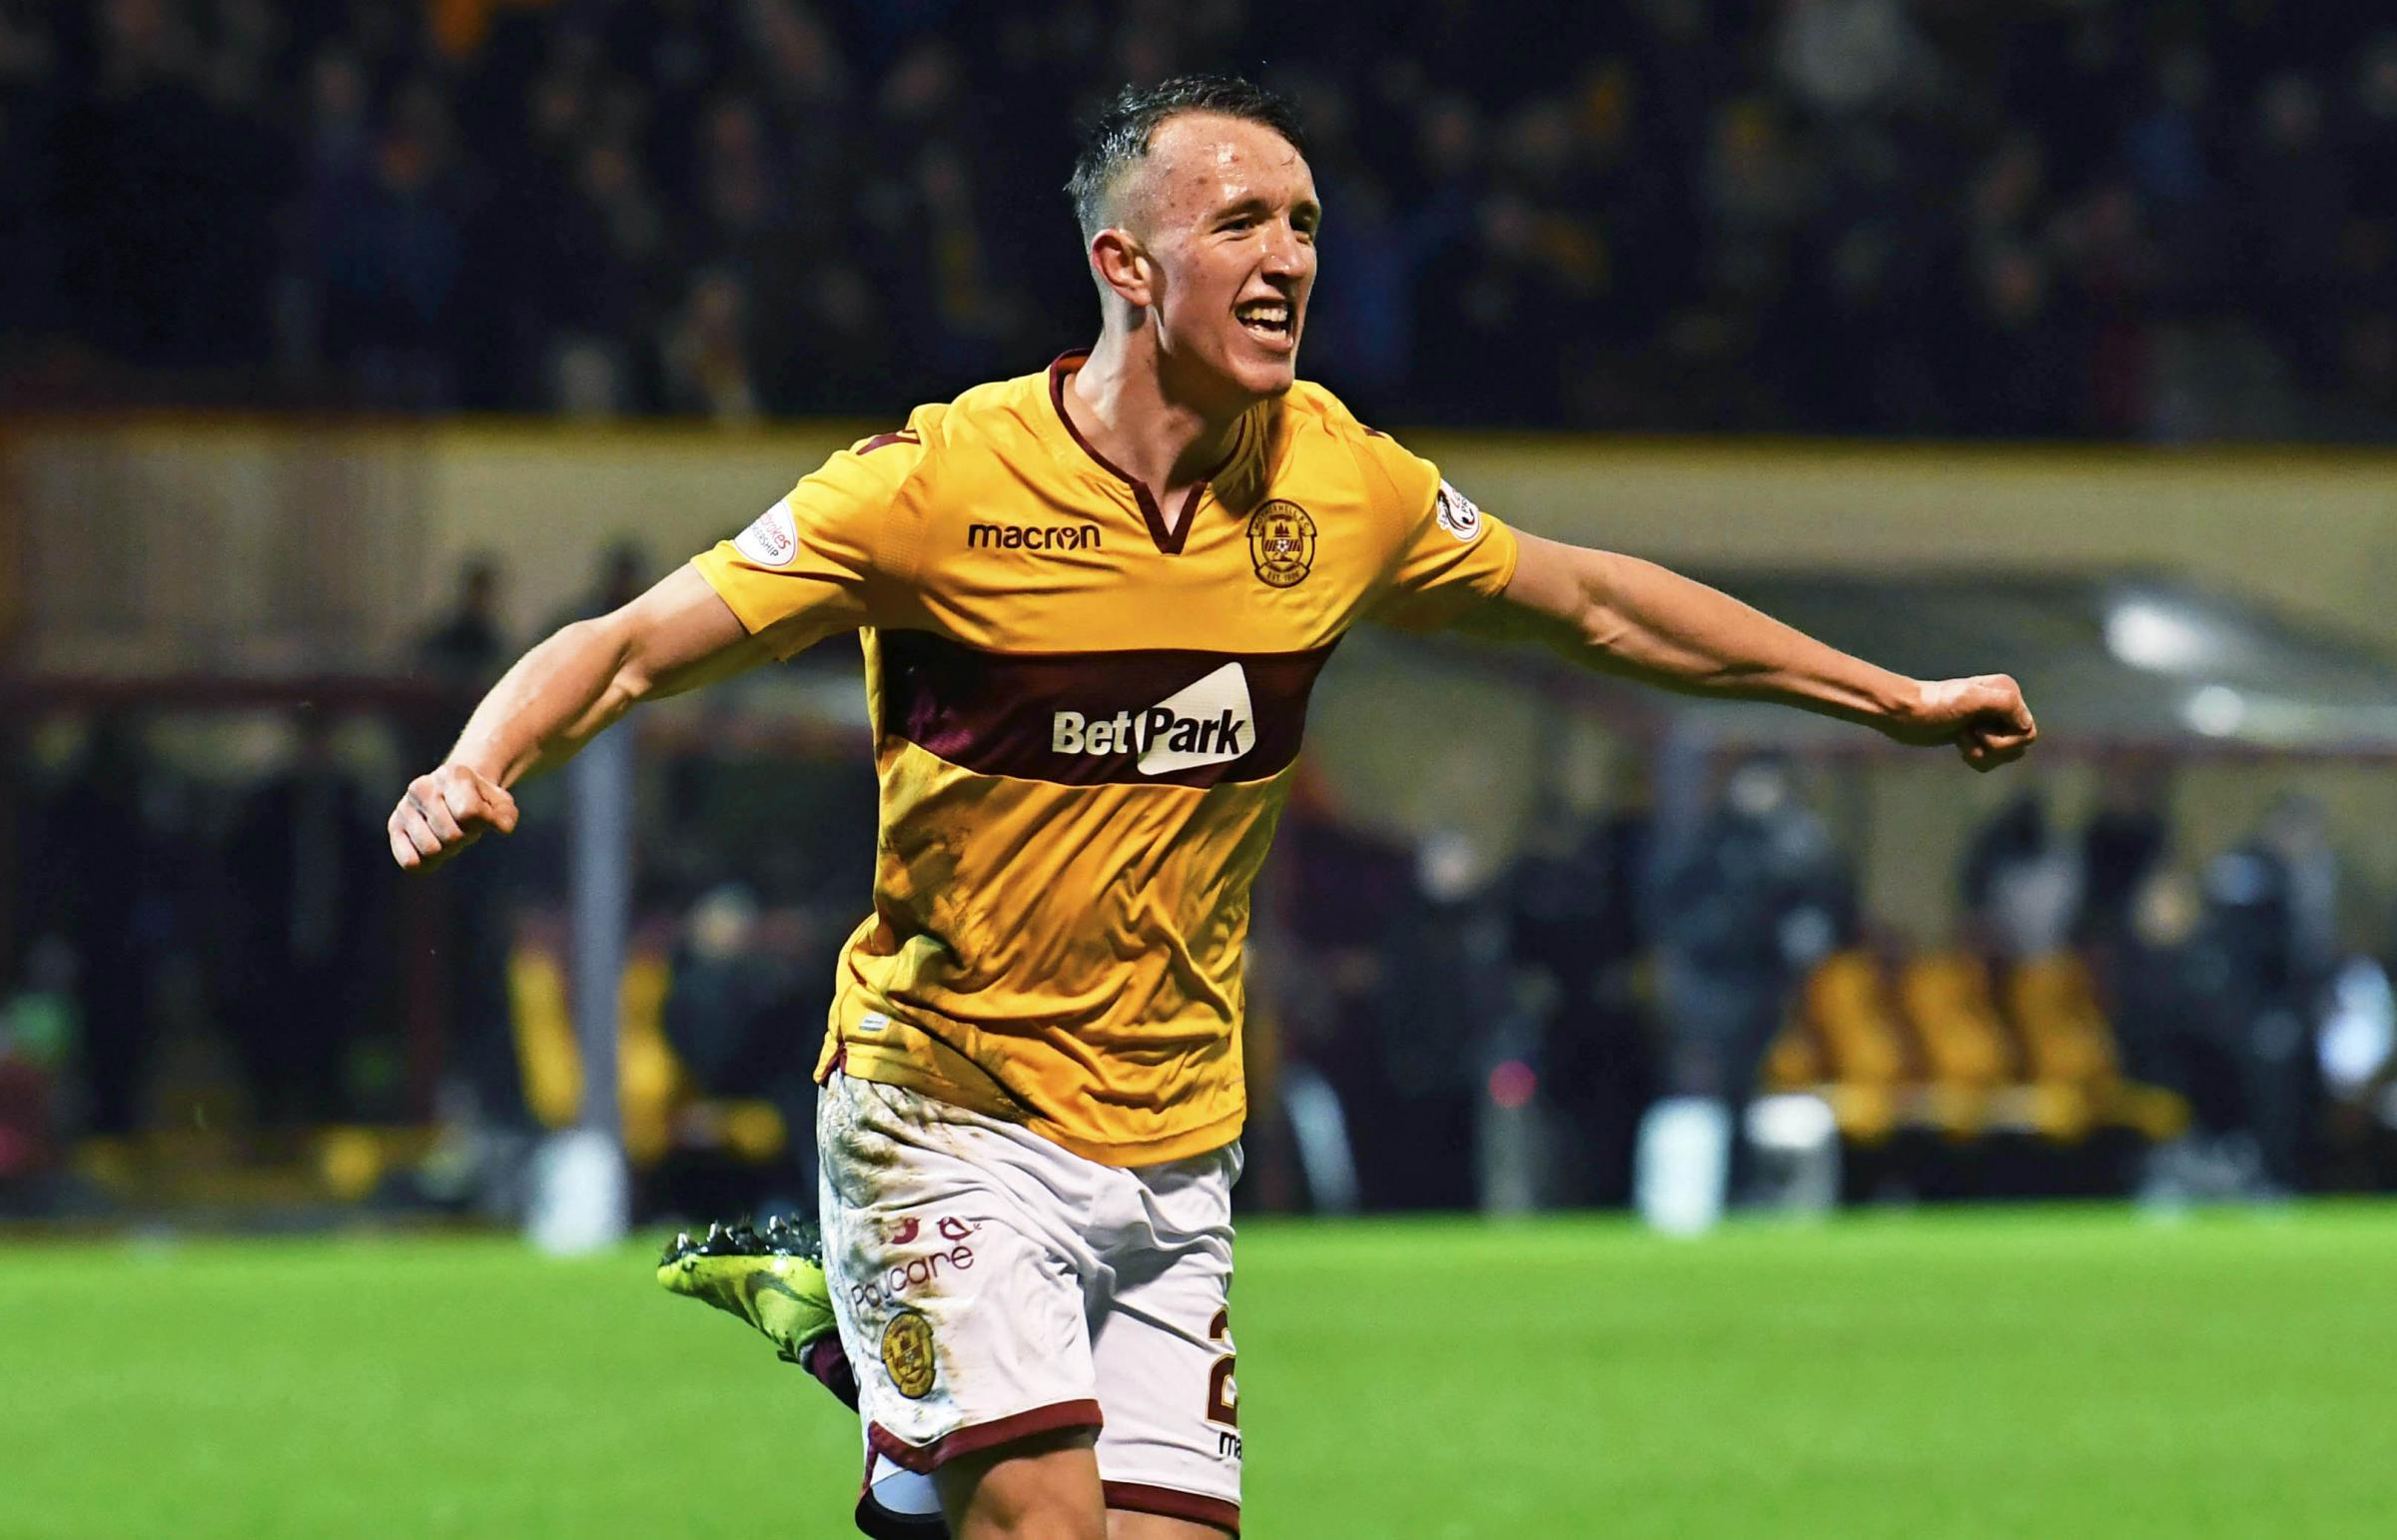 Celtic agree £3m fee with Motherwell for David Turnbull